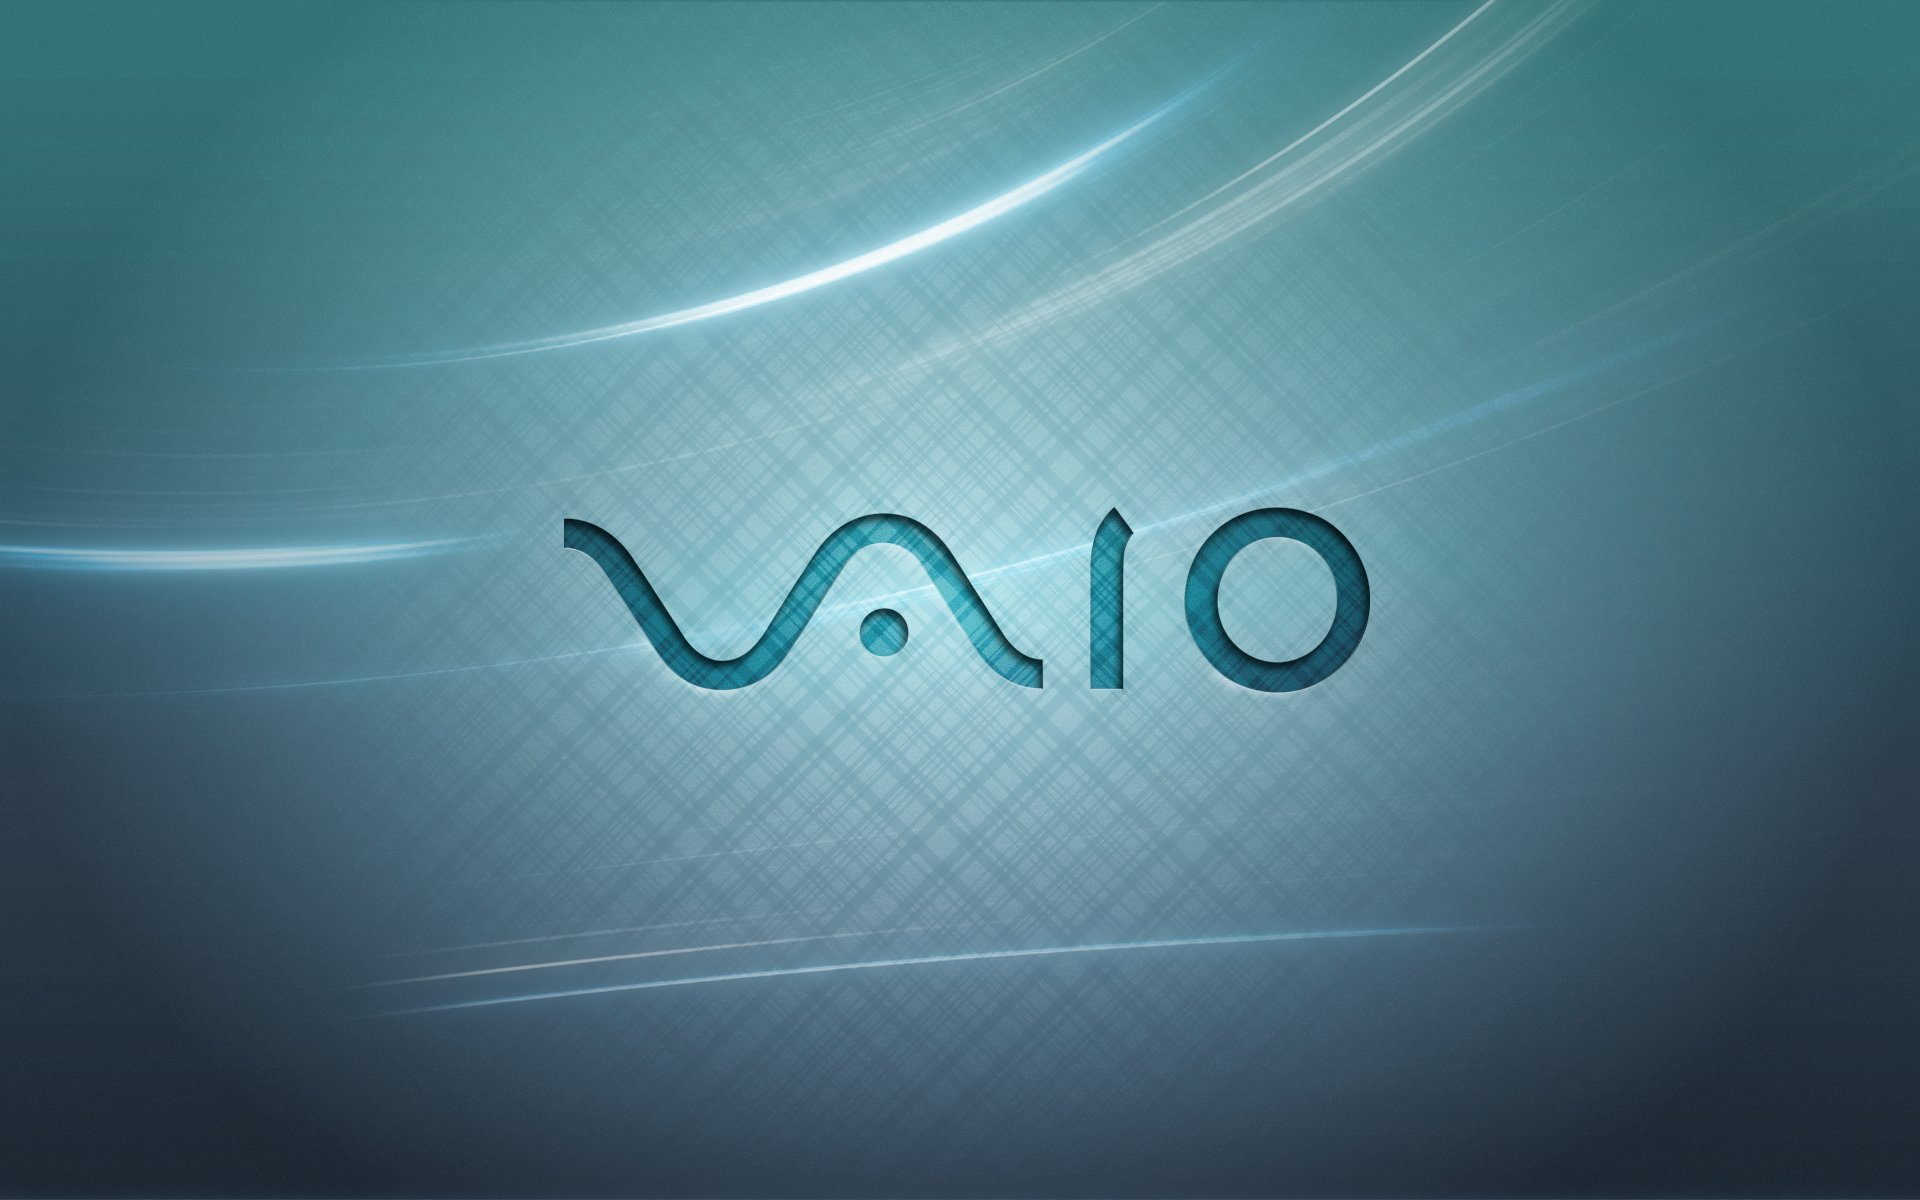 Vaio Wallpapers